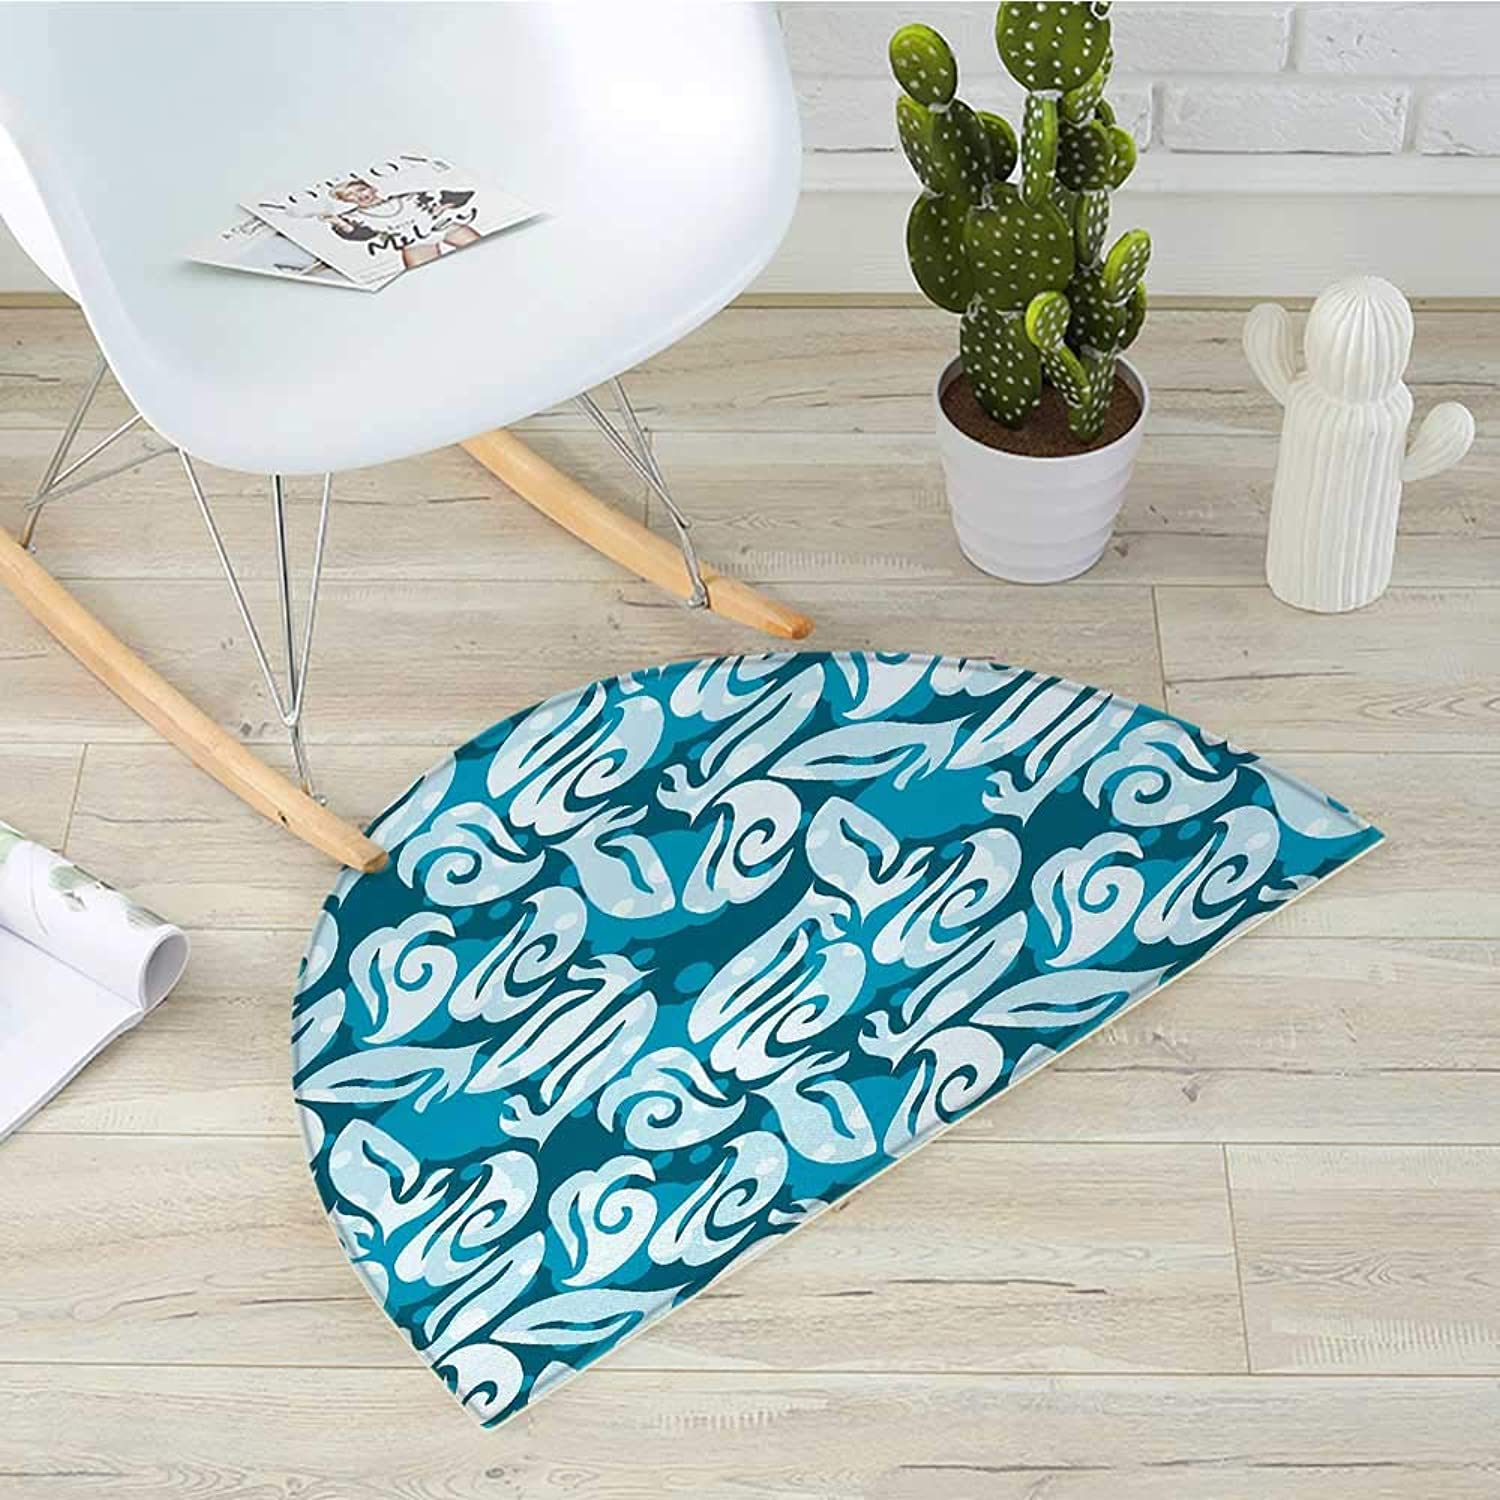 Abstract Semicircle Doormat Classic Abstract Shapes Shabby Fashion Marine Inspirations Artwork Halfmoon doormats H 43.3  xD 64.9  Petrol bluee Turquoise